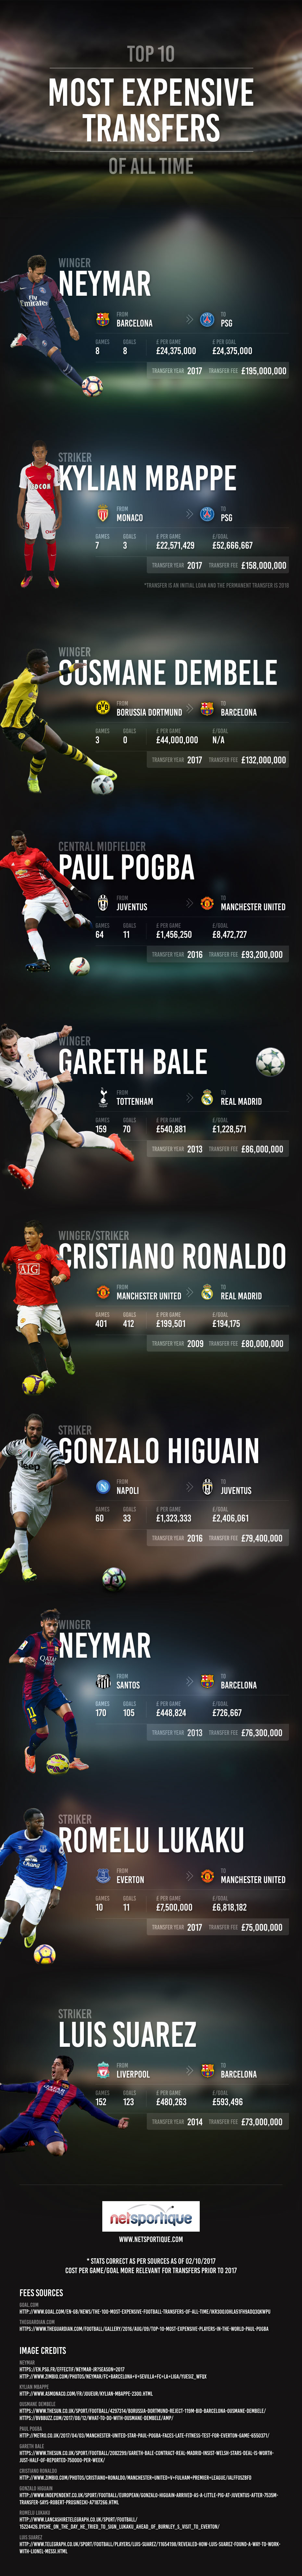 Top 10 Most Expensive Soccer Transfers of All Time